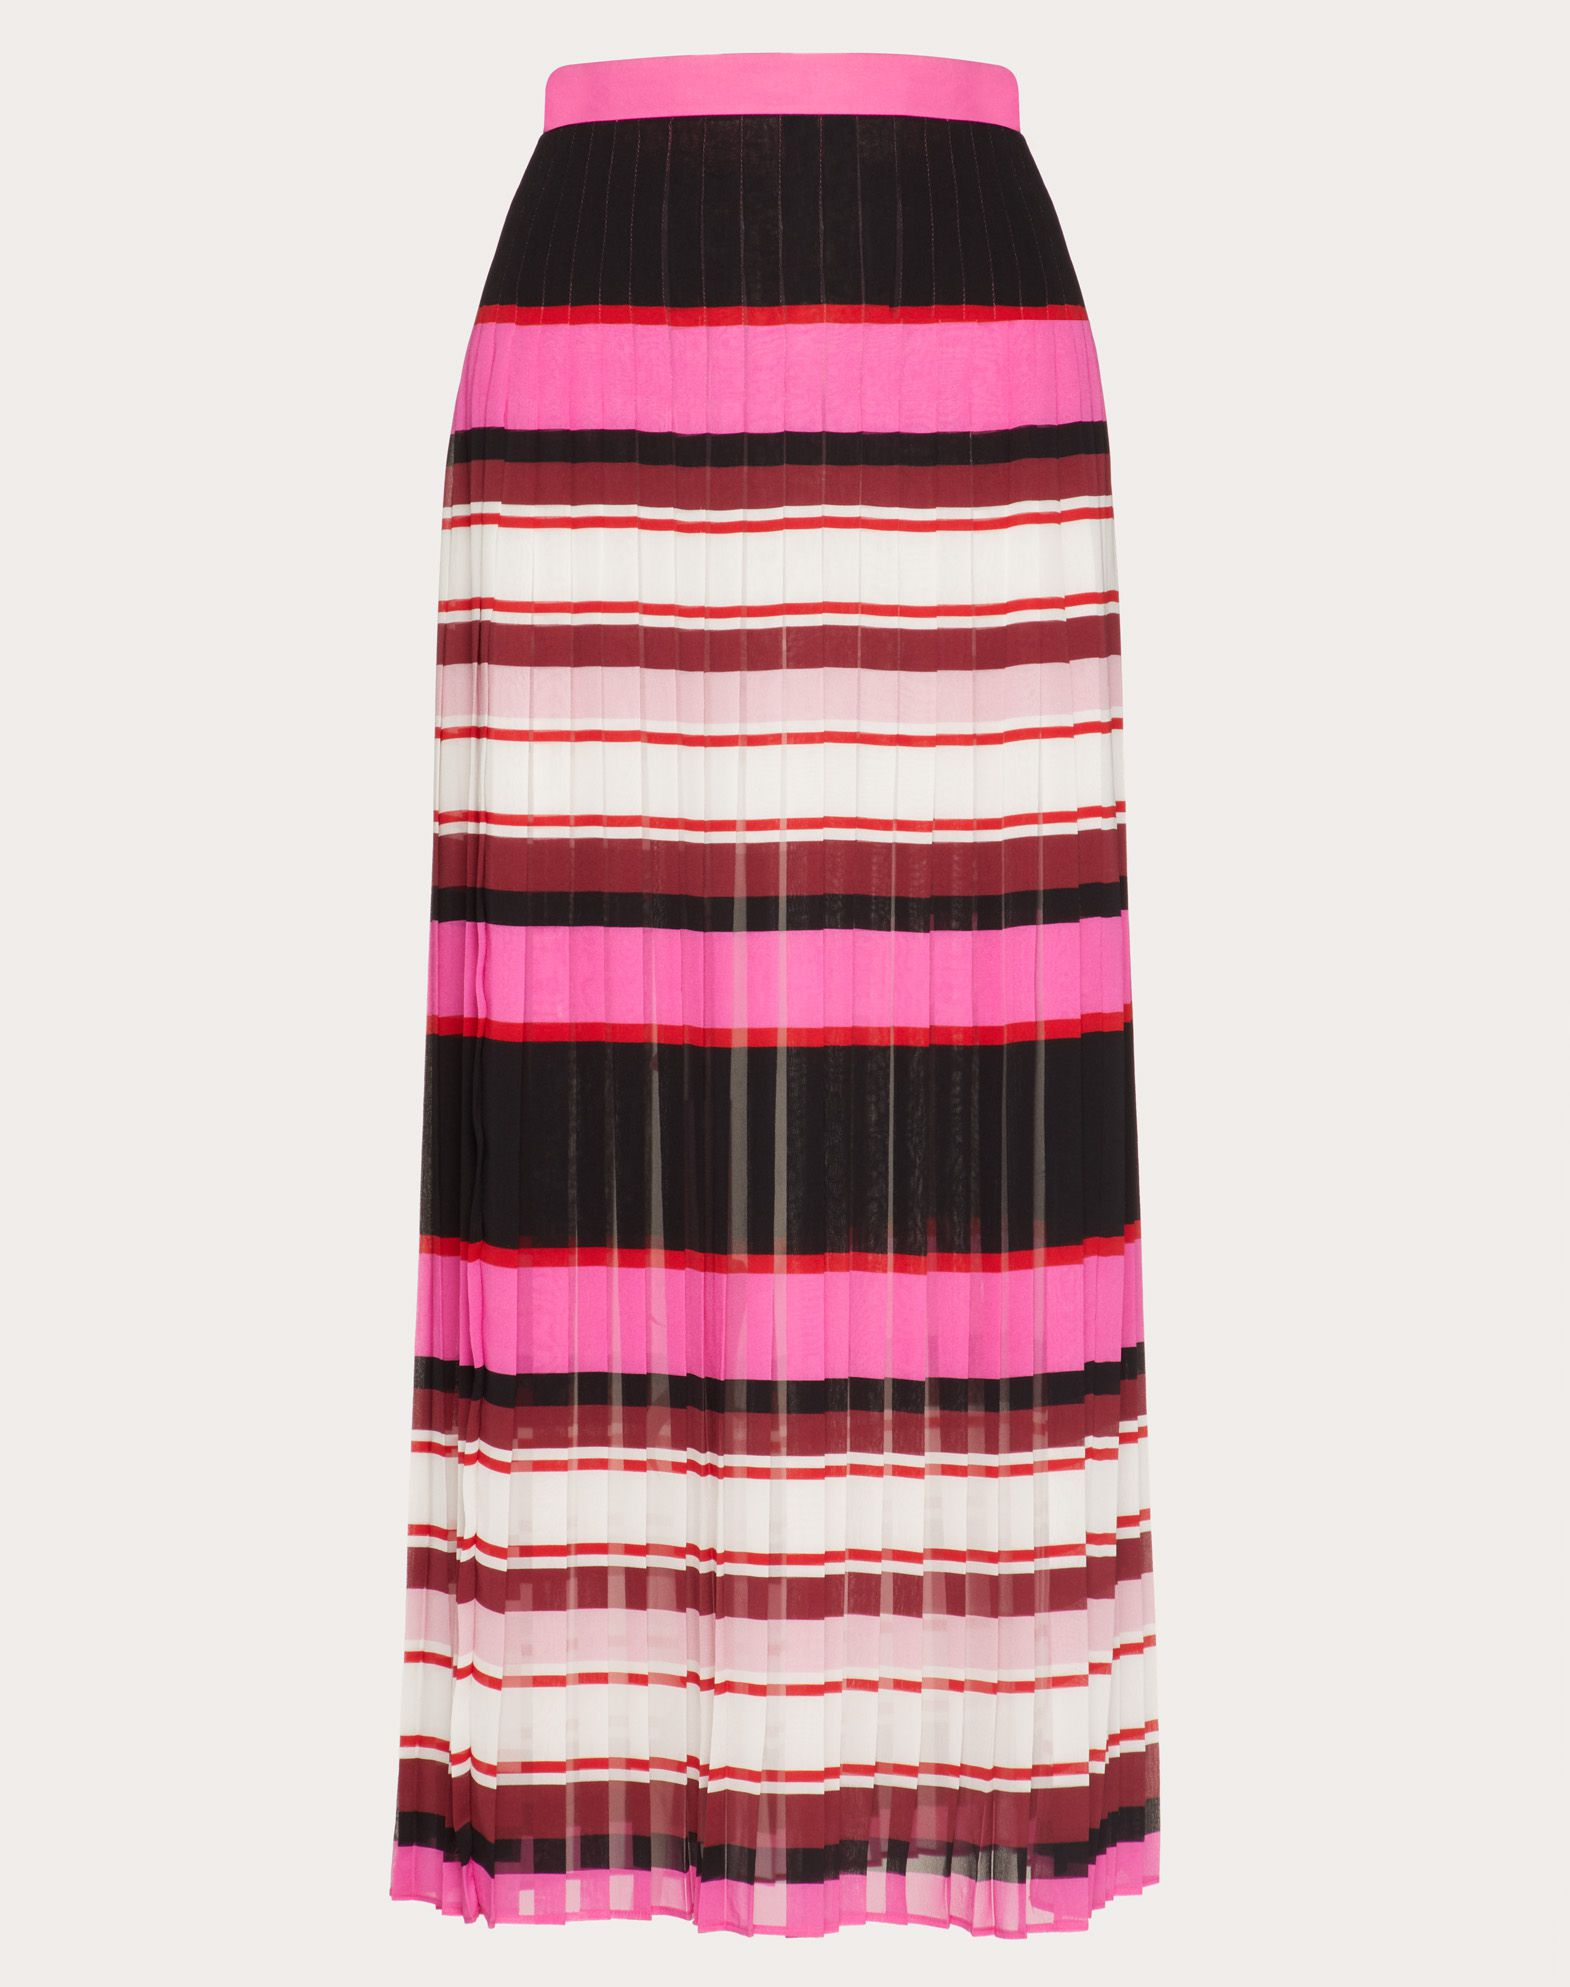 Printed Georgette Skirt with Pleats